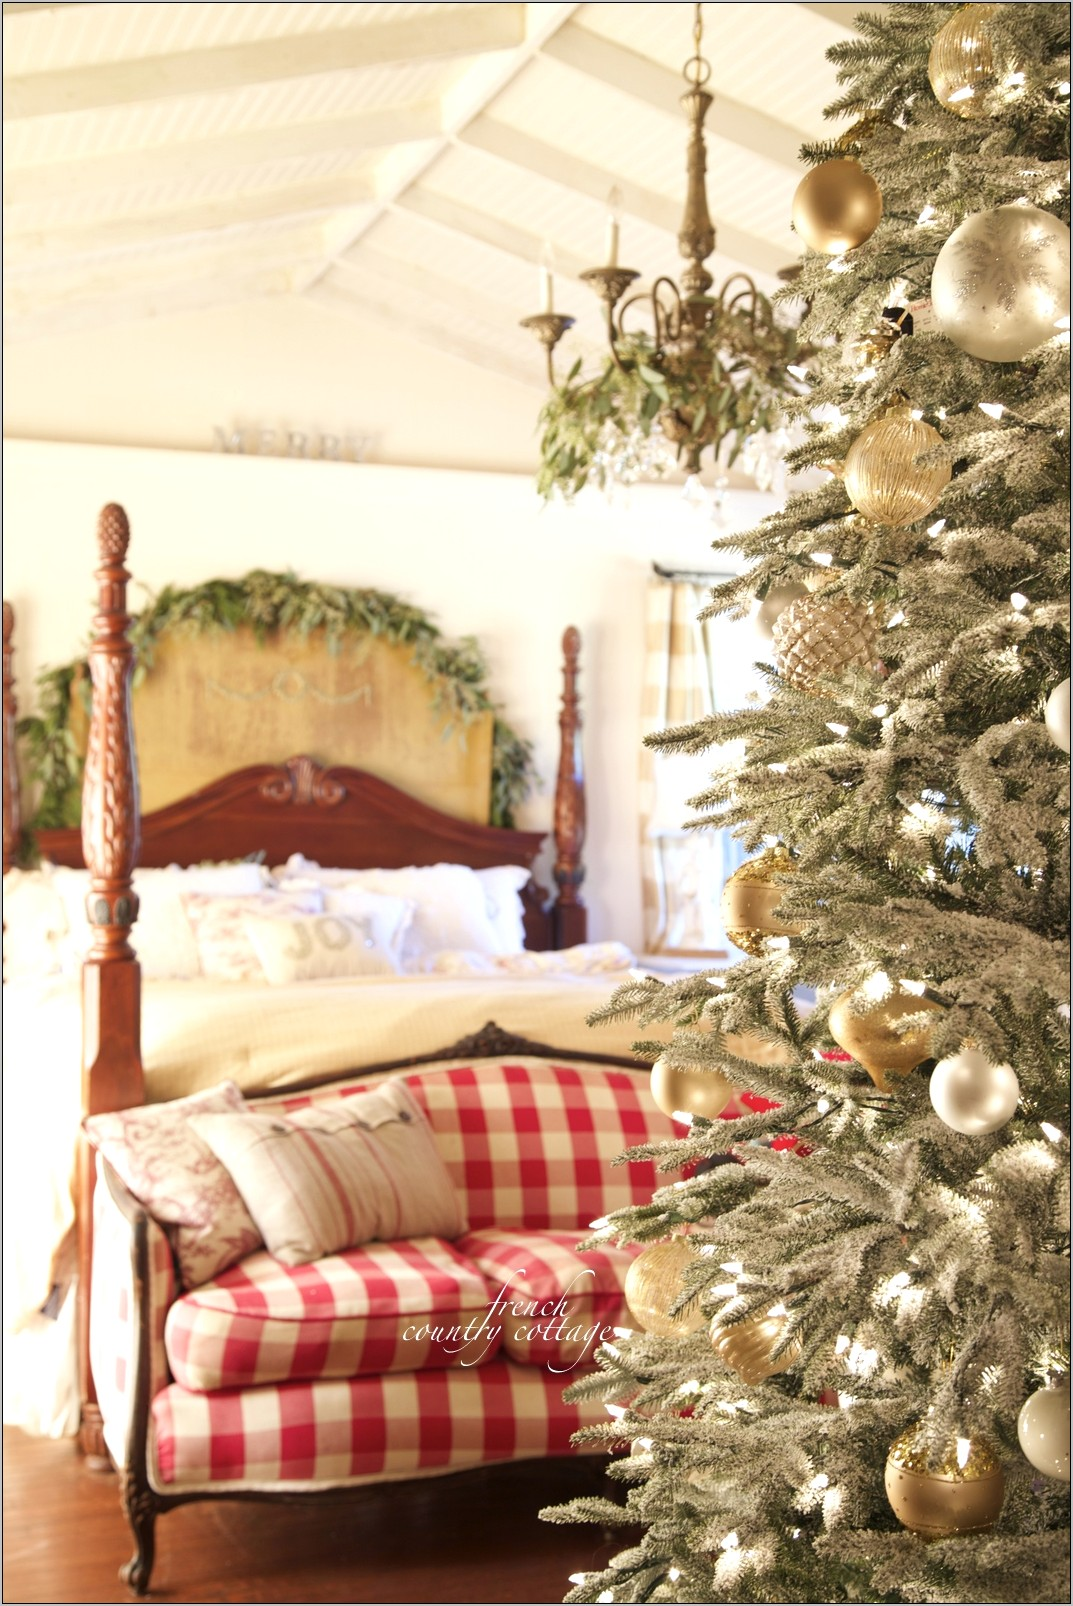 Decorating A Country Kitchen For Christmas